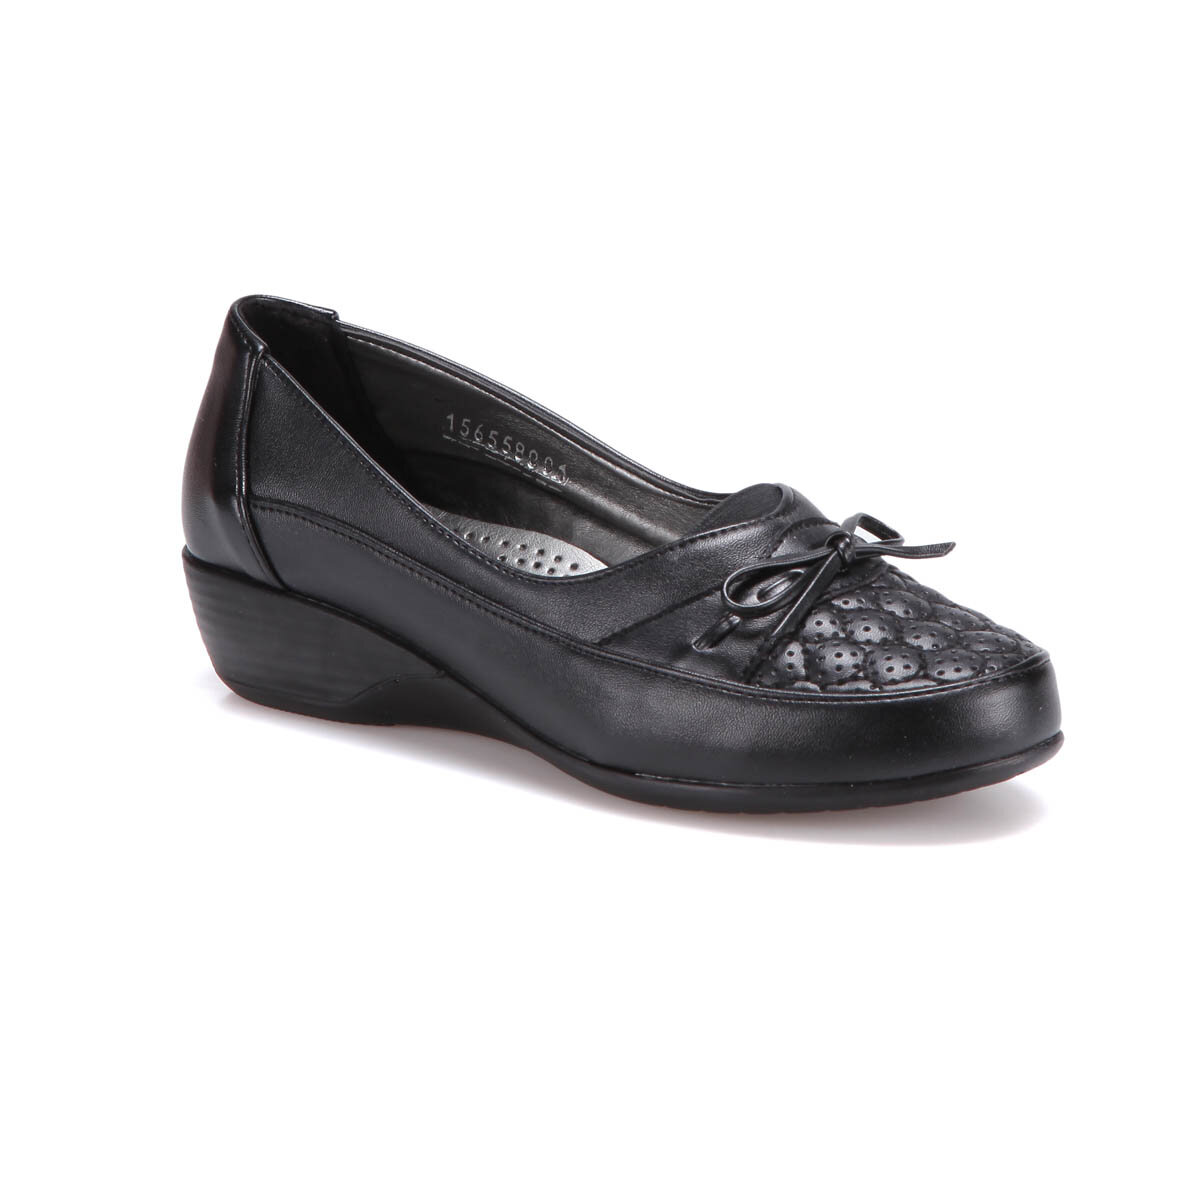 FLO 71. 156558.Z Black Women 'S Classic Shoes Polaris